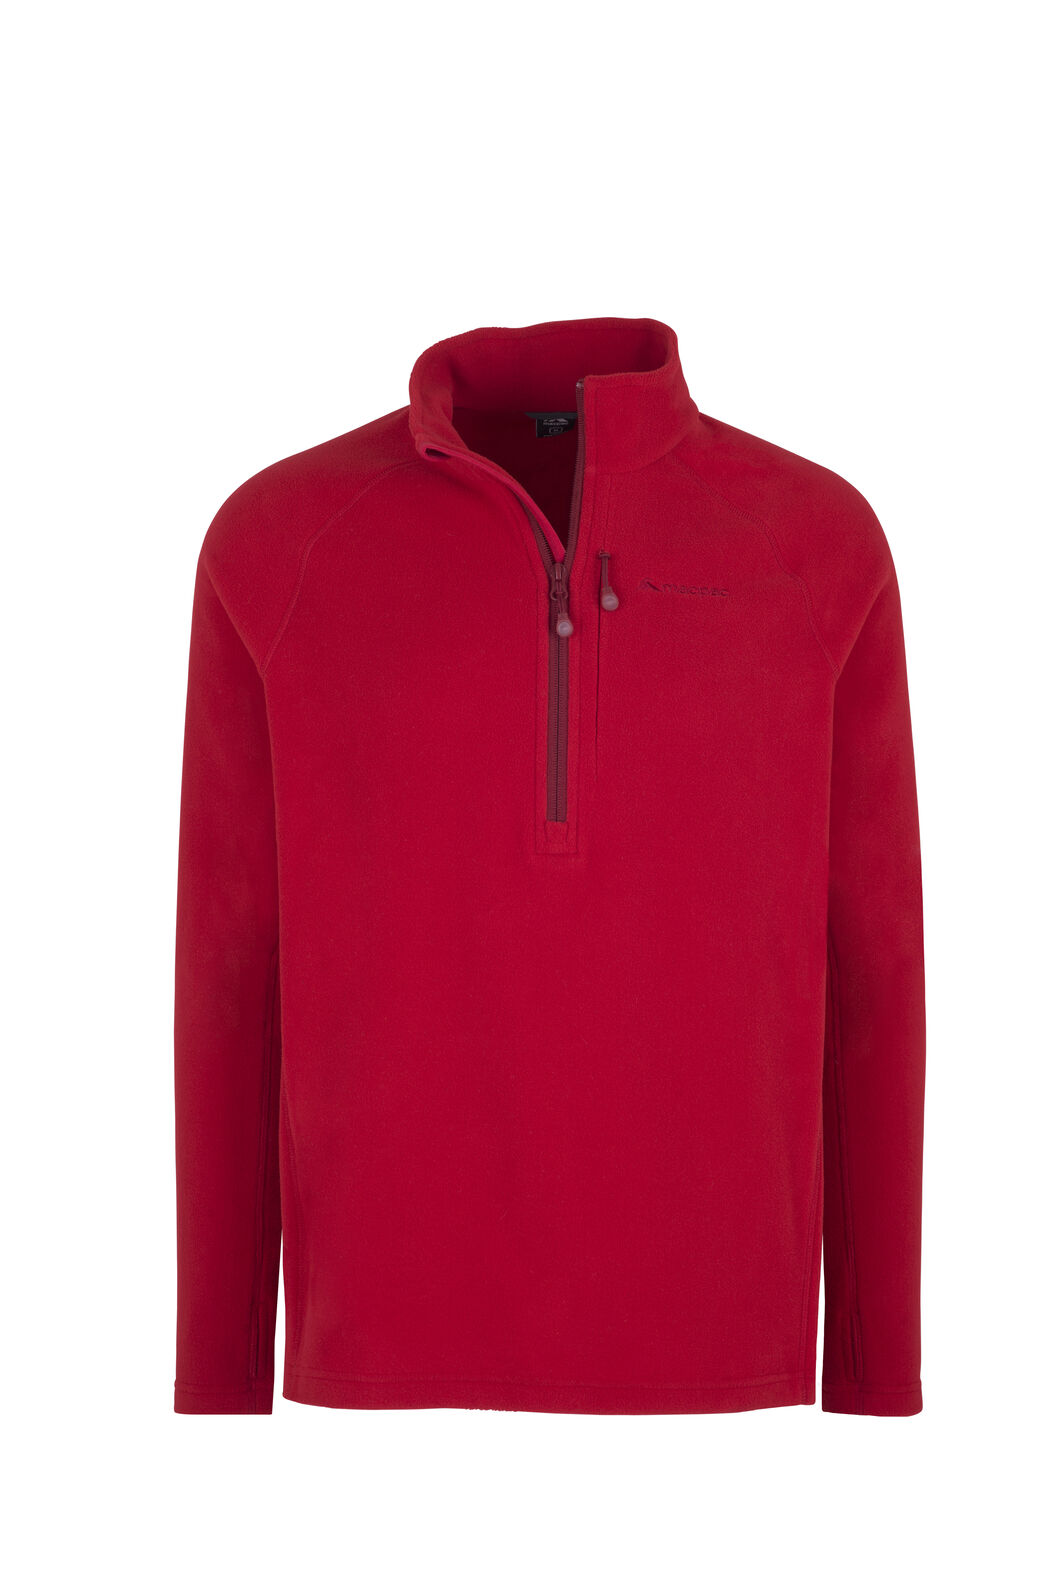 Tui Fleece Pullover - Men's, Haute Red, hi-res